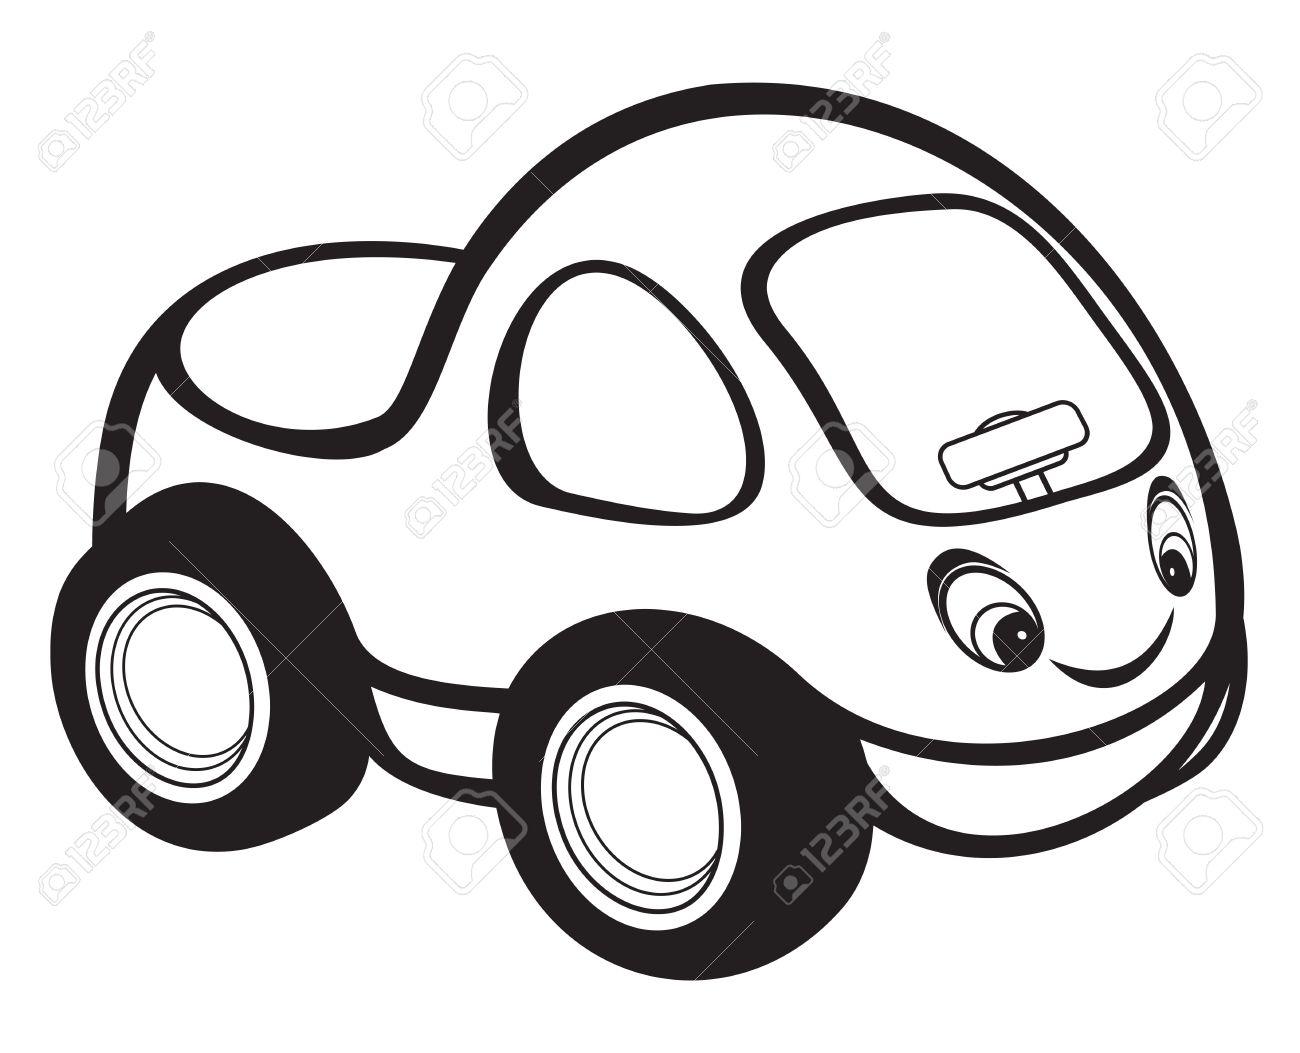 cute kids race car black and white royalty free cliparts vectors rh 123rf com black and white race car clipart black and white cartoon car clipart